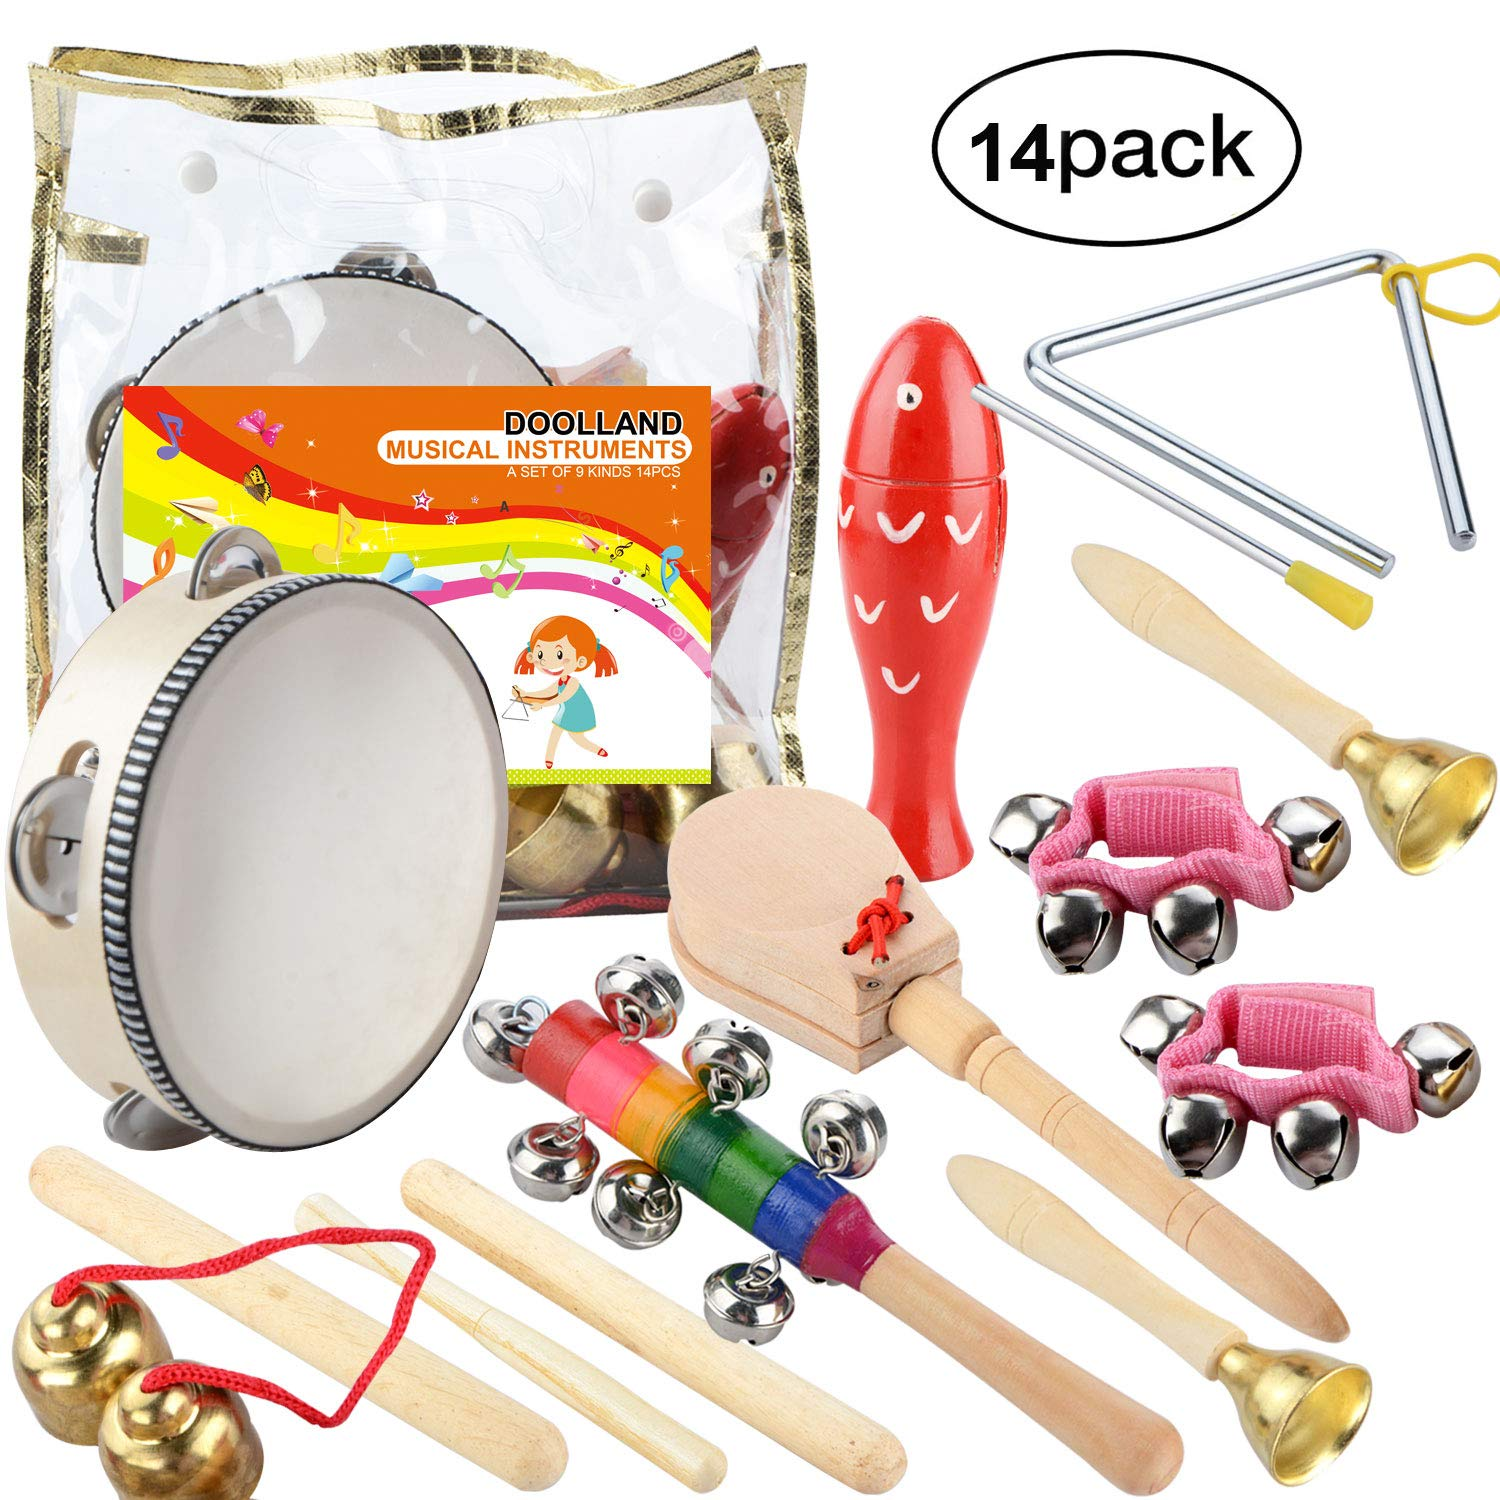 Doolland Musical Instruments Xylophone Set Percussion Toy Rhythm Band Set Toddler Wooden Percussion Toy - 14PCS